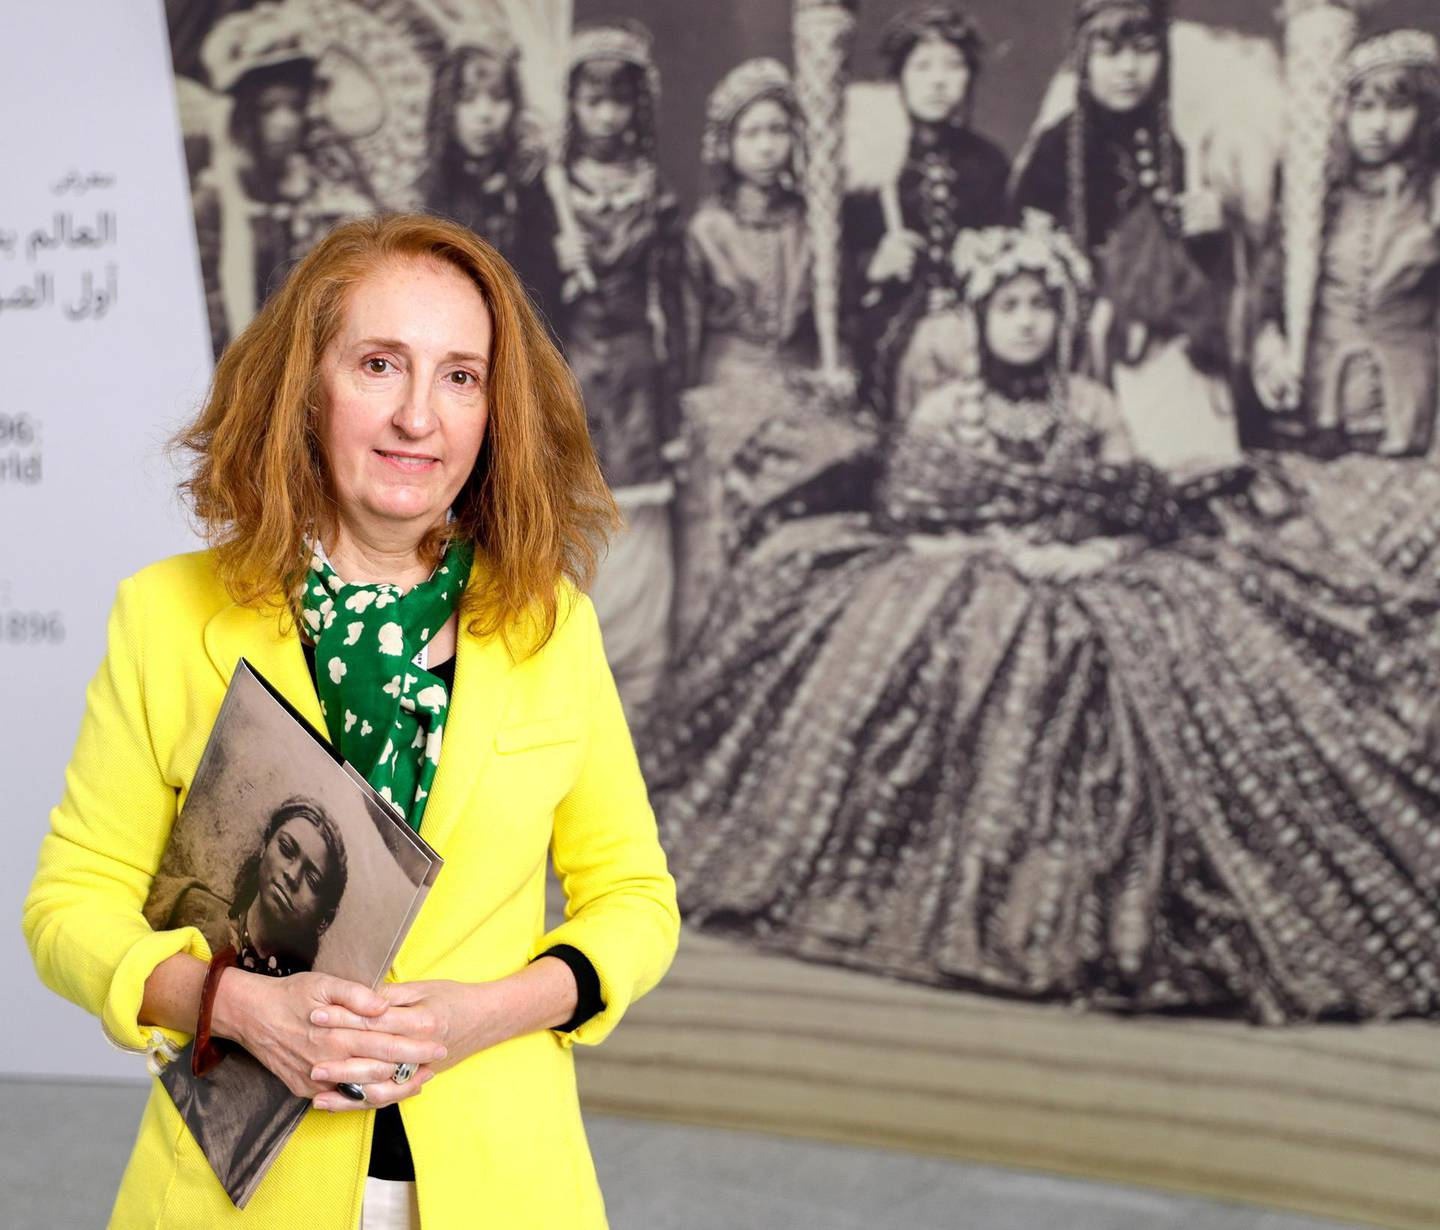 Abu Dhabi, April 23, 2019.    Photographs 1842-1896:  An early album of the world at Louvre Abu Dhabi.  --  Curated by Christine Barthe, Head of Photographic Collections Heritage Unit at the misée du quai Branly-  Jacques Chirac.Victor Besa/The National Section:  Arts & LifeReporter:  Melissa Gronlund